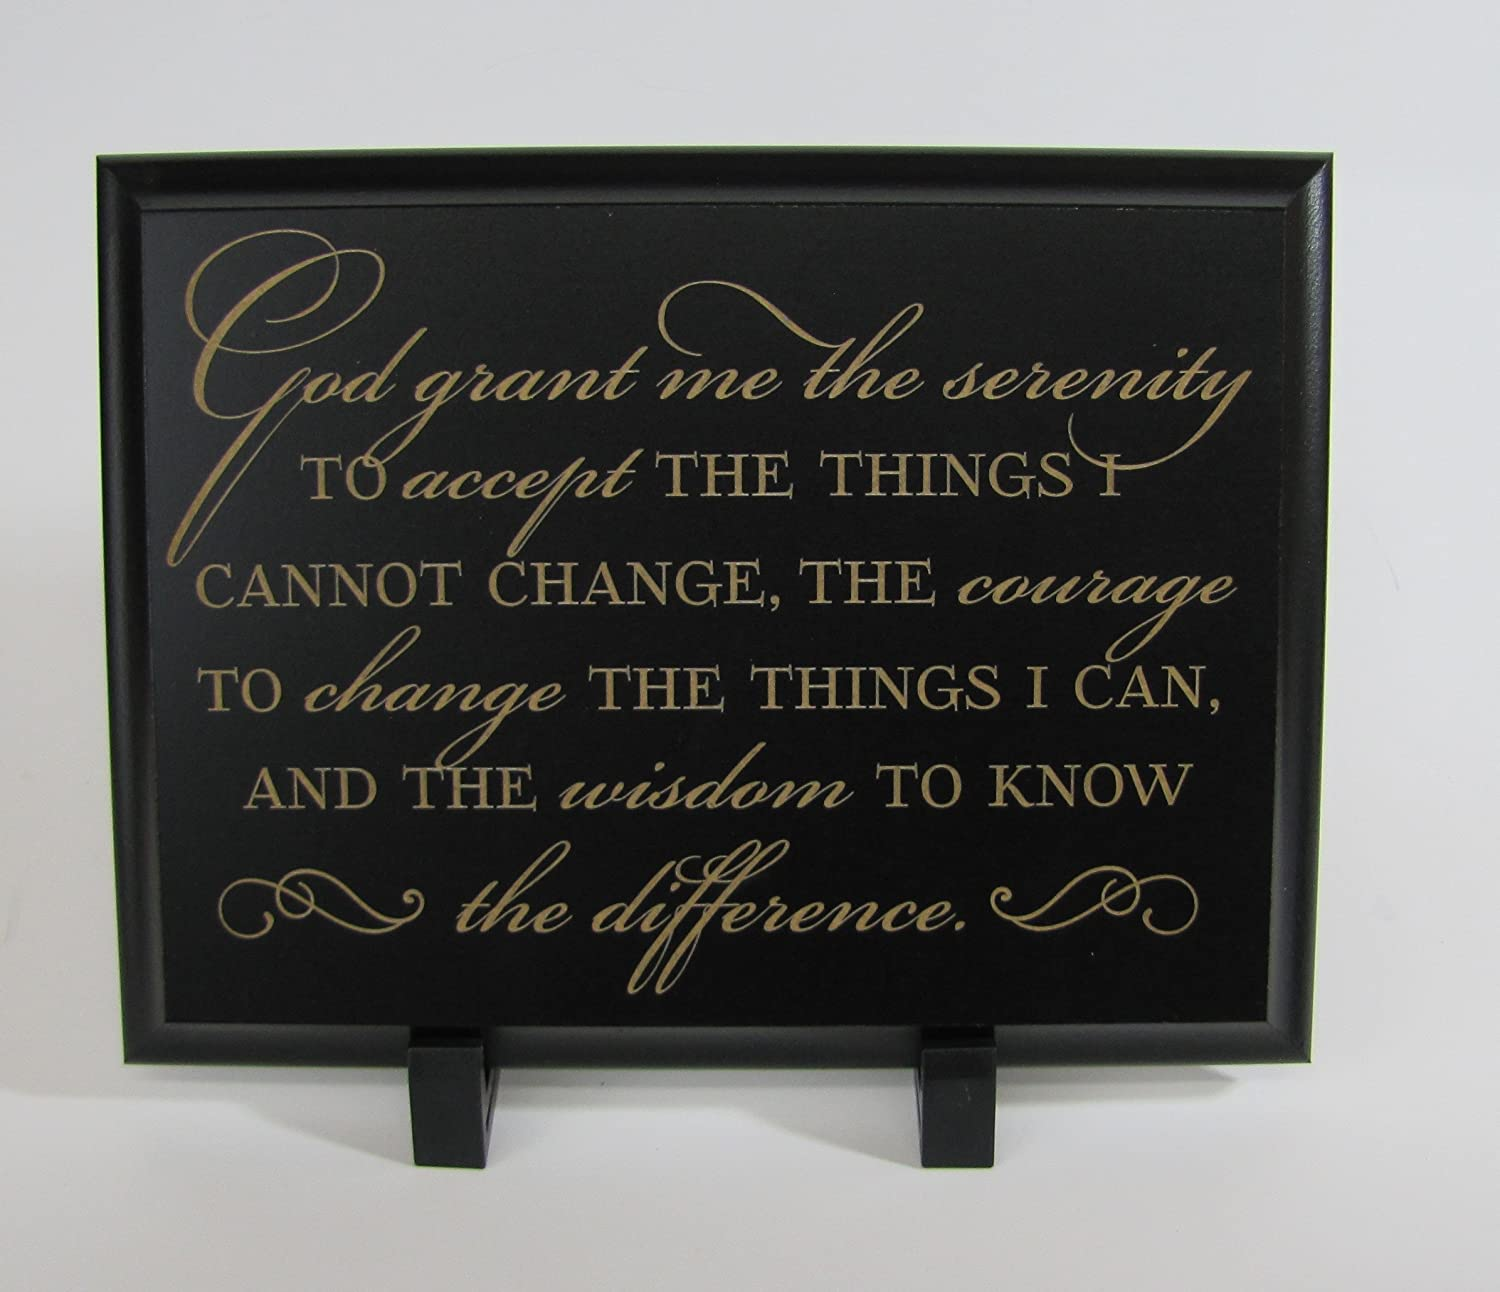 Amazon Com Serenity Prayer Wall Decor The Serenity Prayer God Grant Me The Serenity To Accept The Things I Cannot Change Courage To Change The Things I Can And The Wisdom To Know The